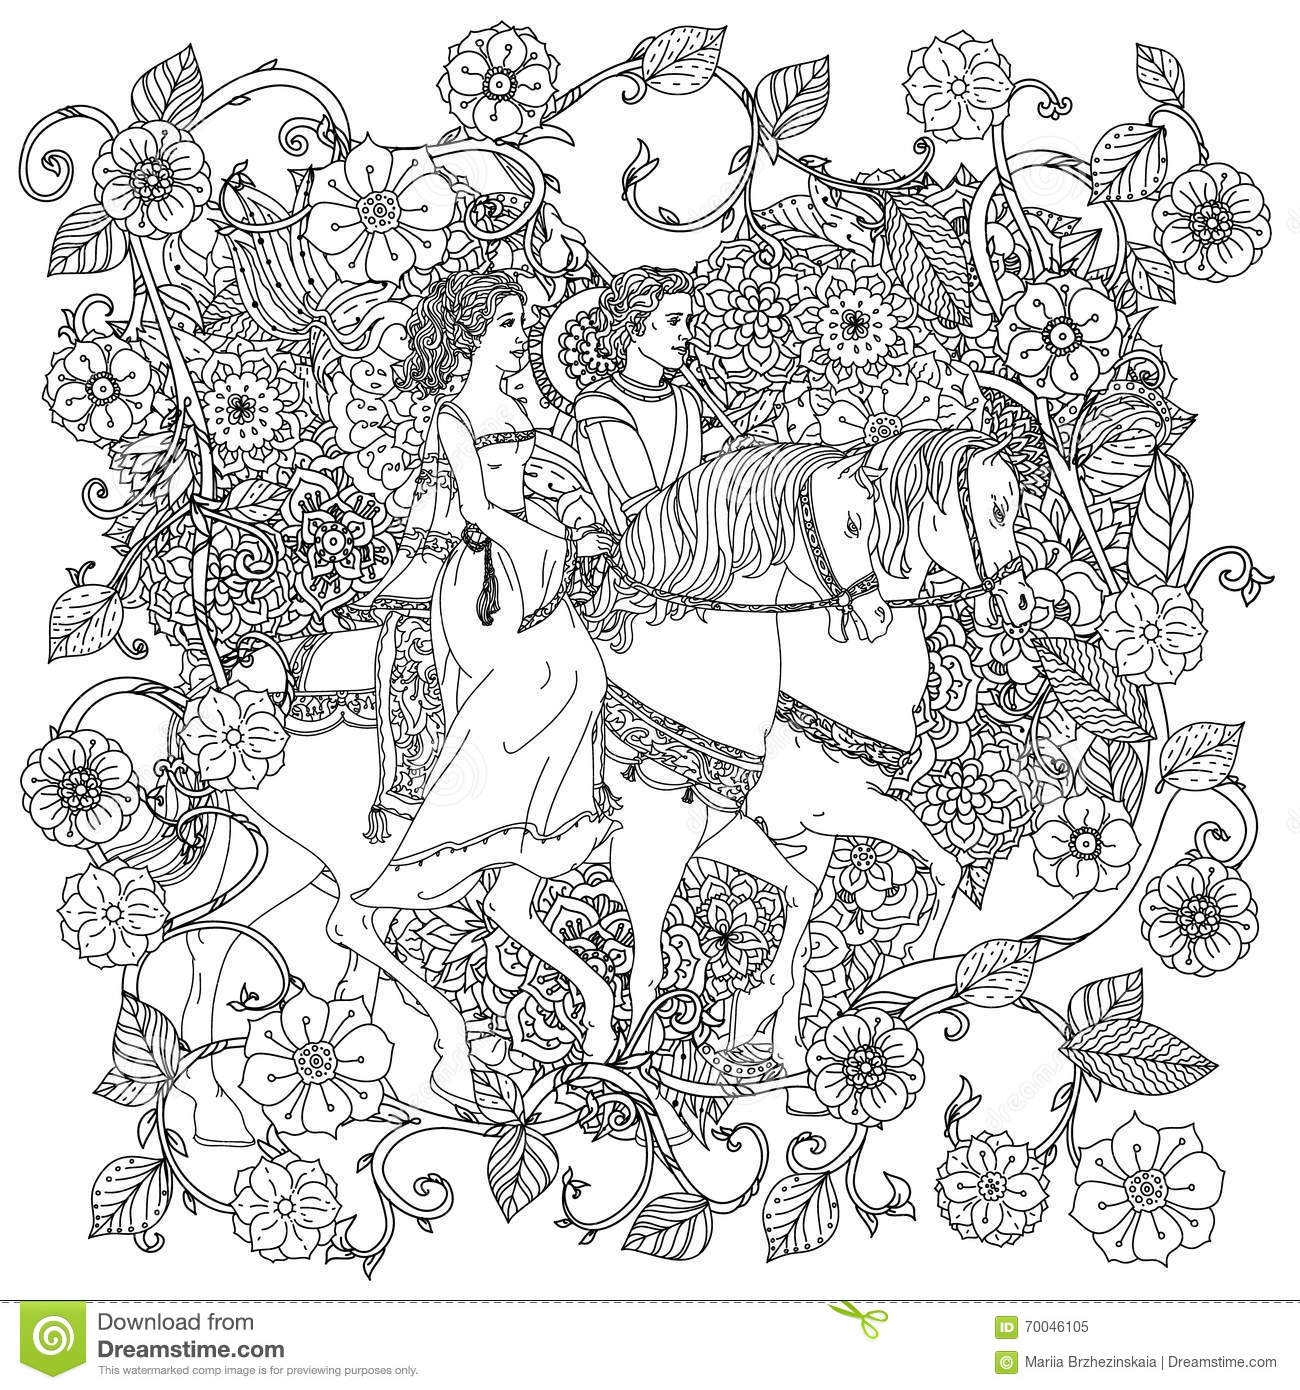 Secret garden colouring in book nz - The Secret Garden Coloring Book Uae Princess Coloring Book For